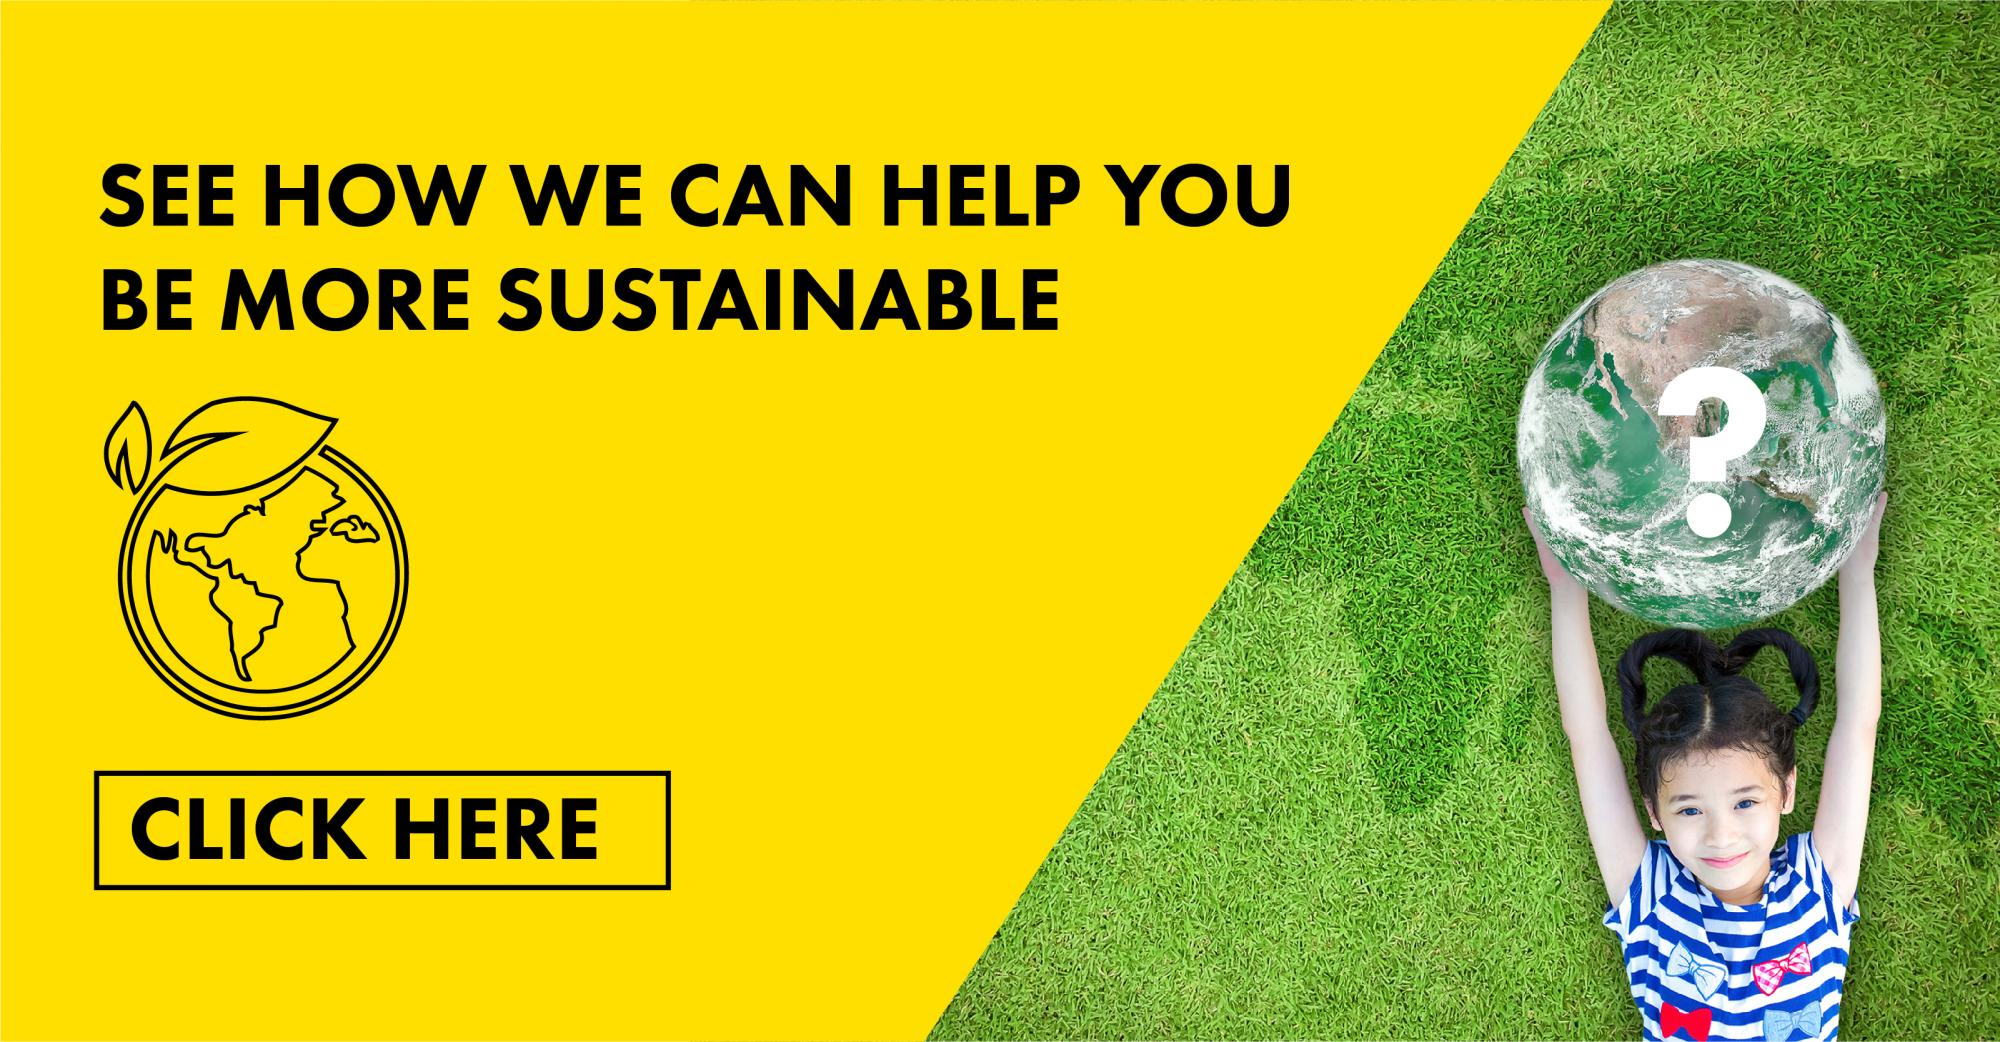 How can we help you be more sustainable?